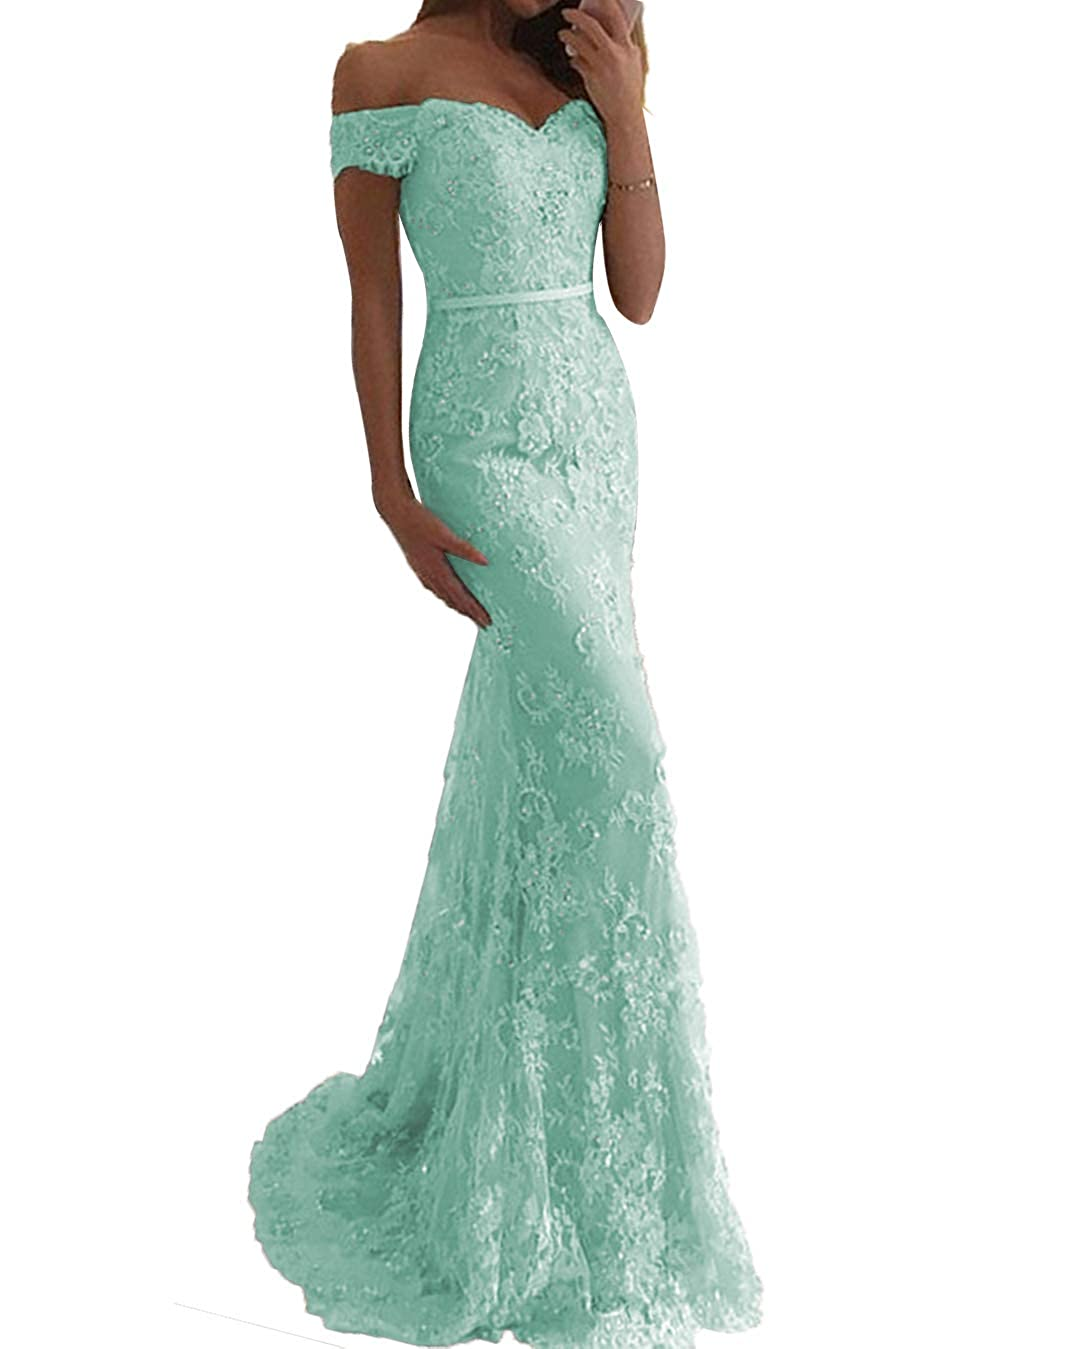 5b0adb90d49e SDRESS Crystals Lace Appliques Cap Sleeve Off Shoulder Mermaid Prom Party  Dress at Amazon Women's Clothing store: